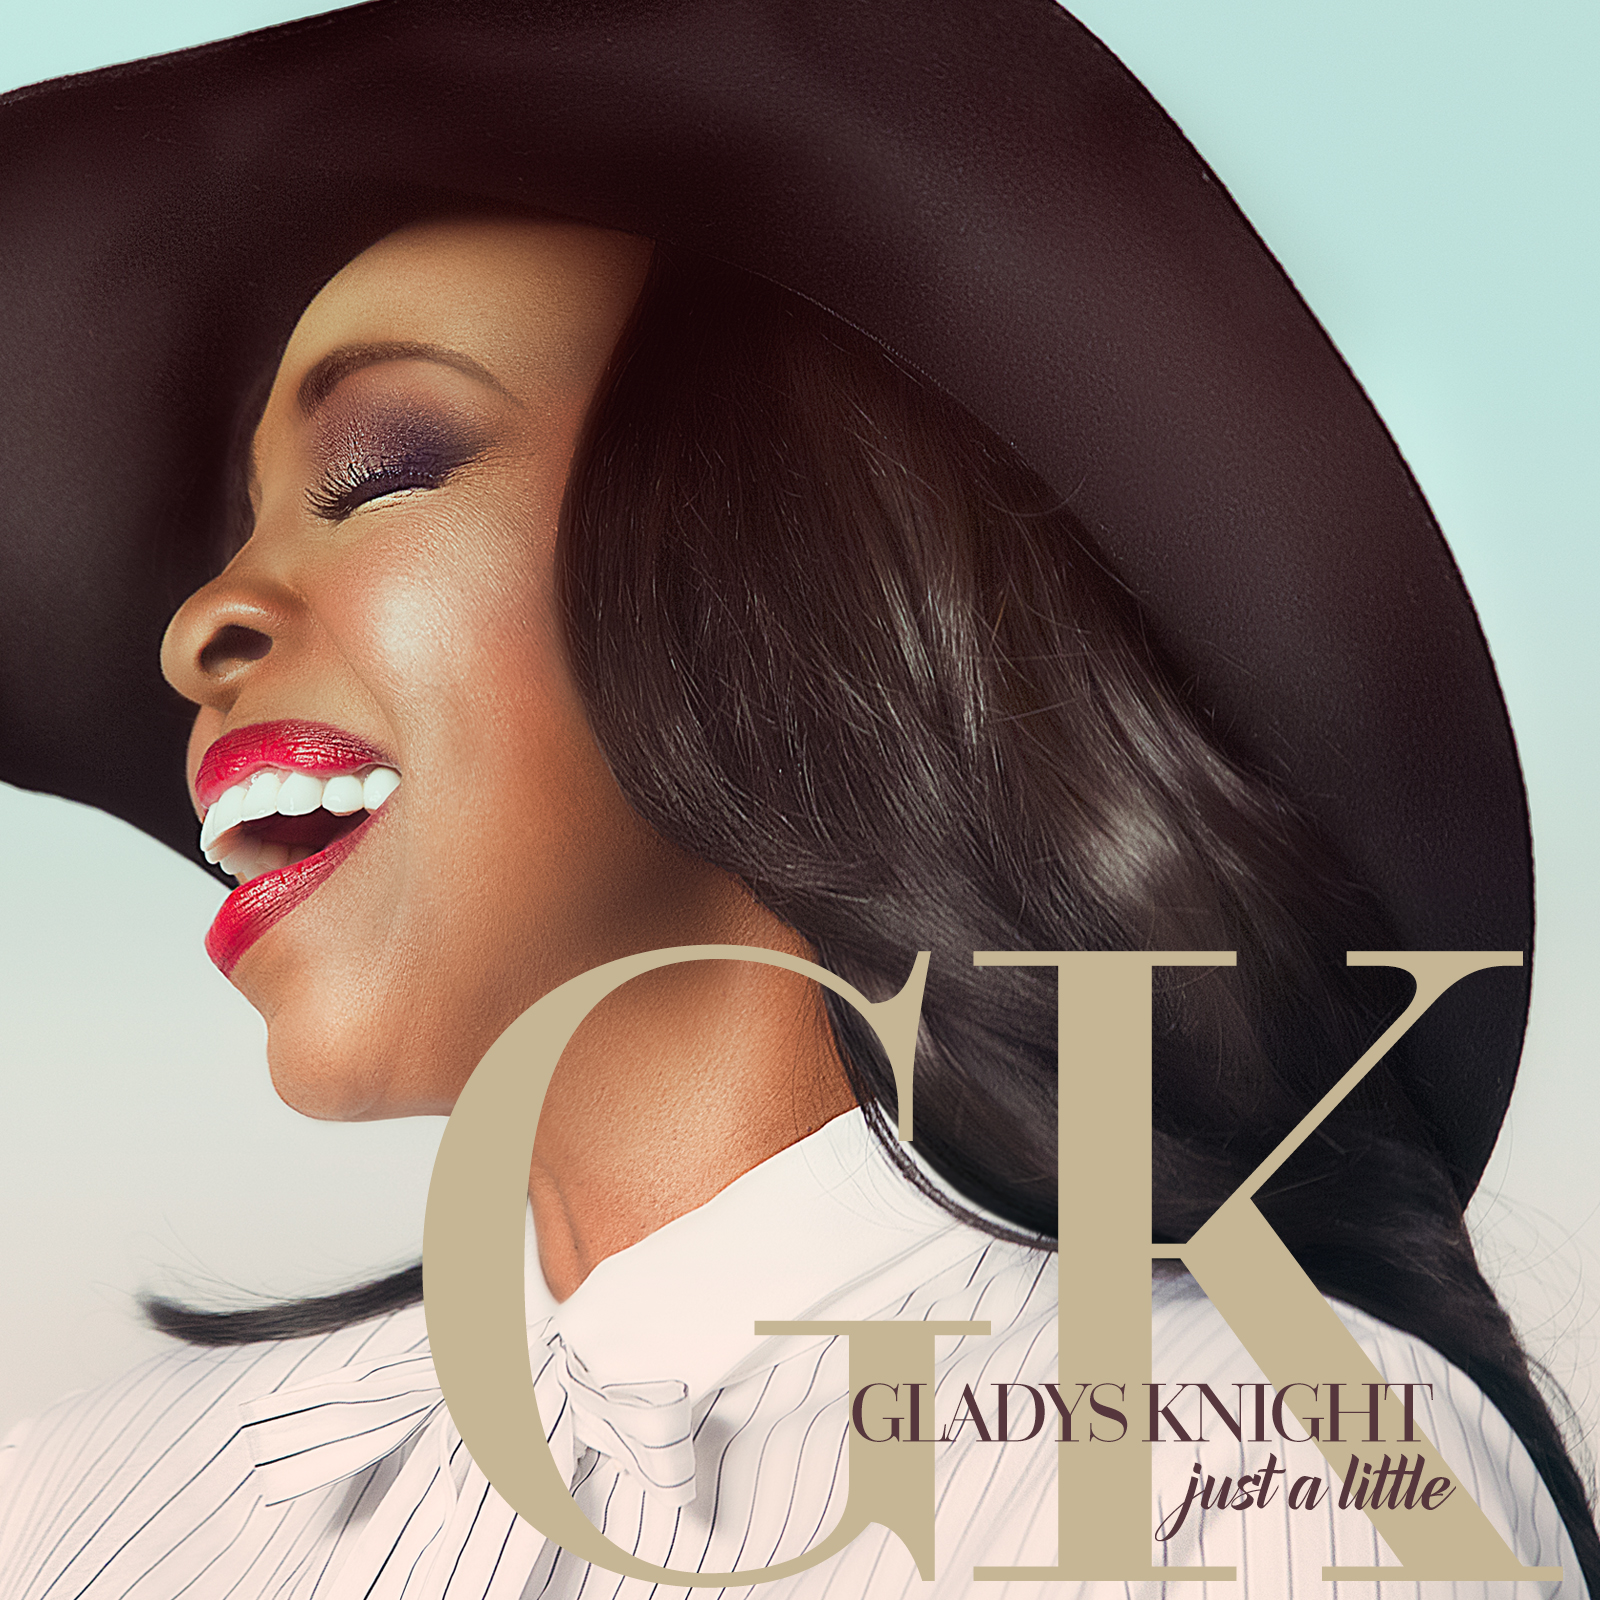 Gladys Knight Gives the World 'Just A Little' Taste of G70 ... Kanye West Power Album